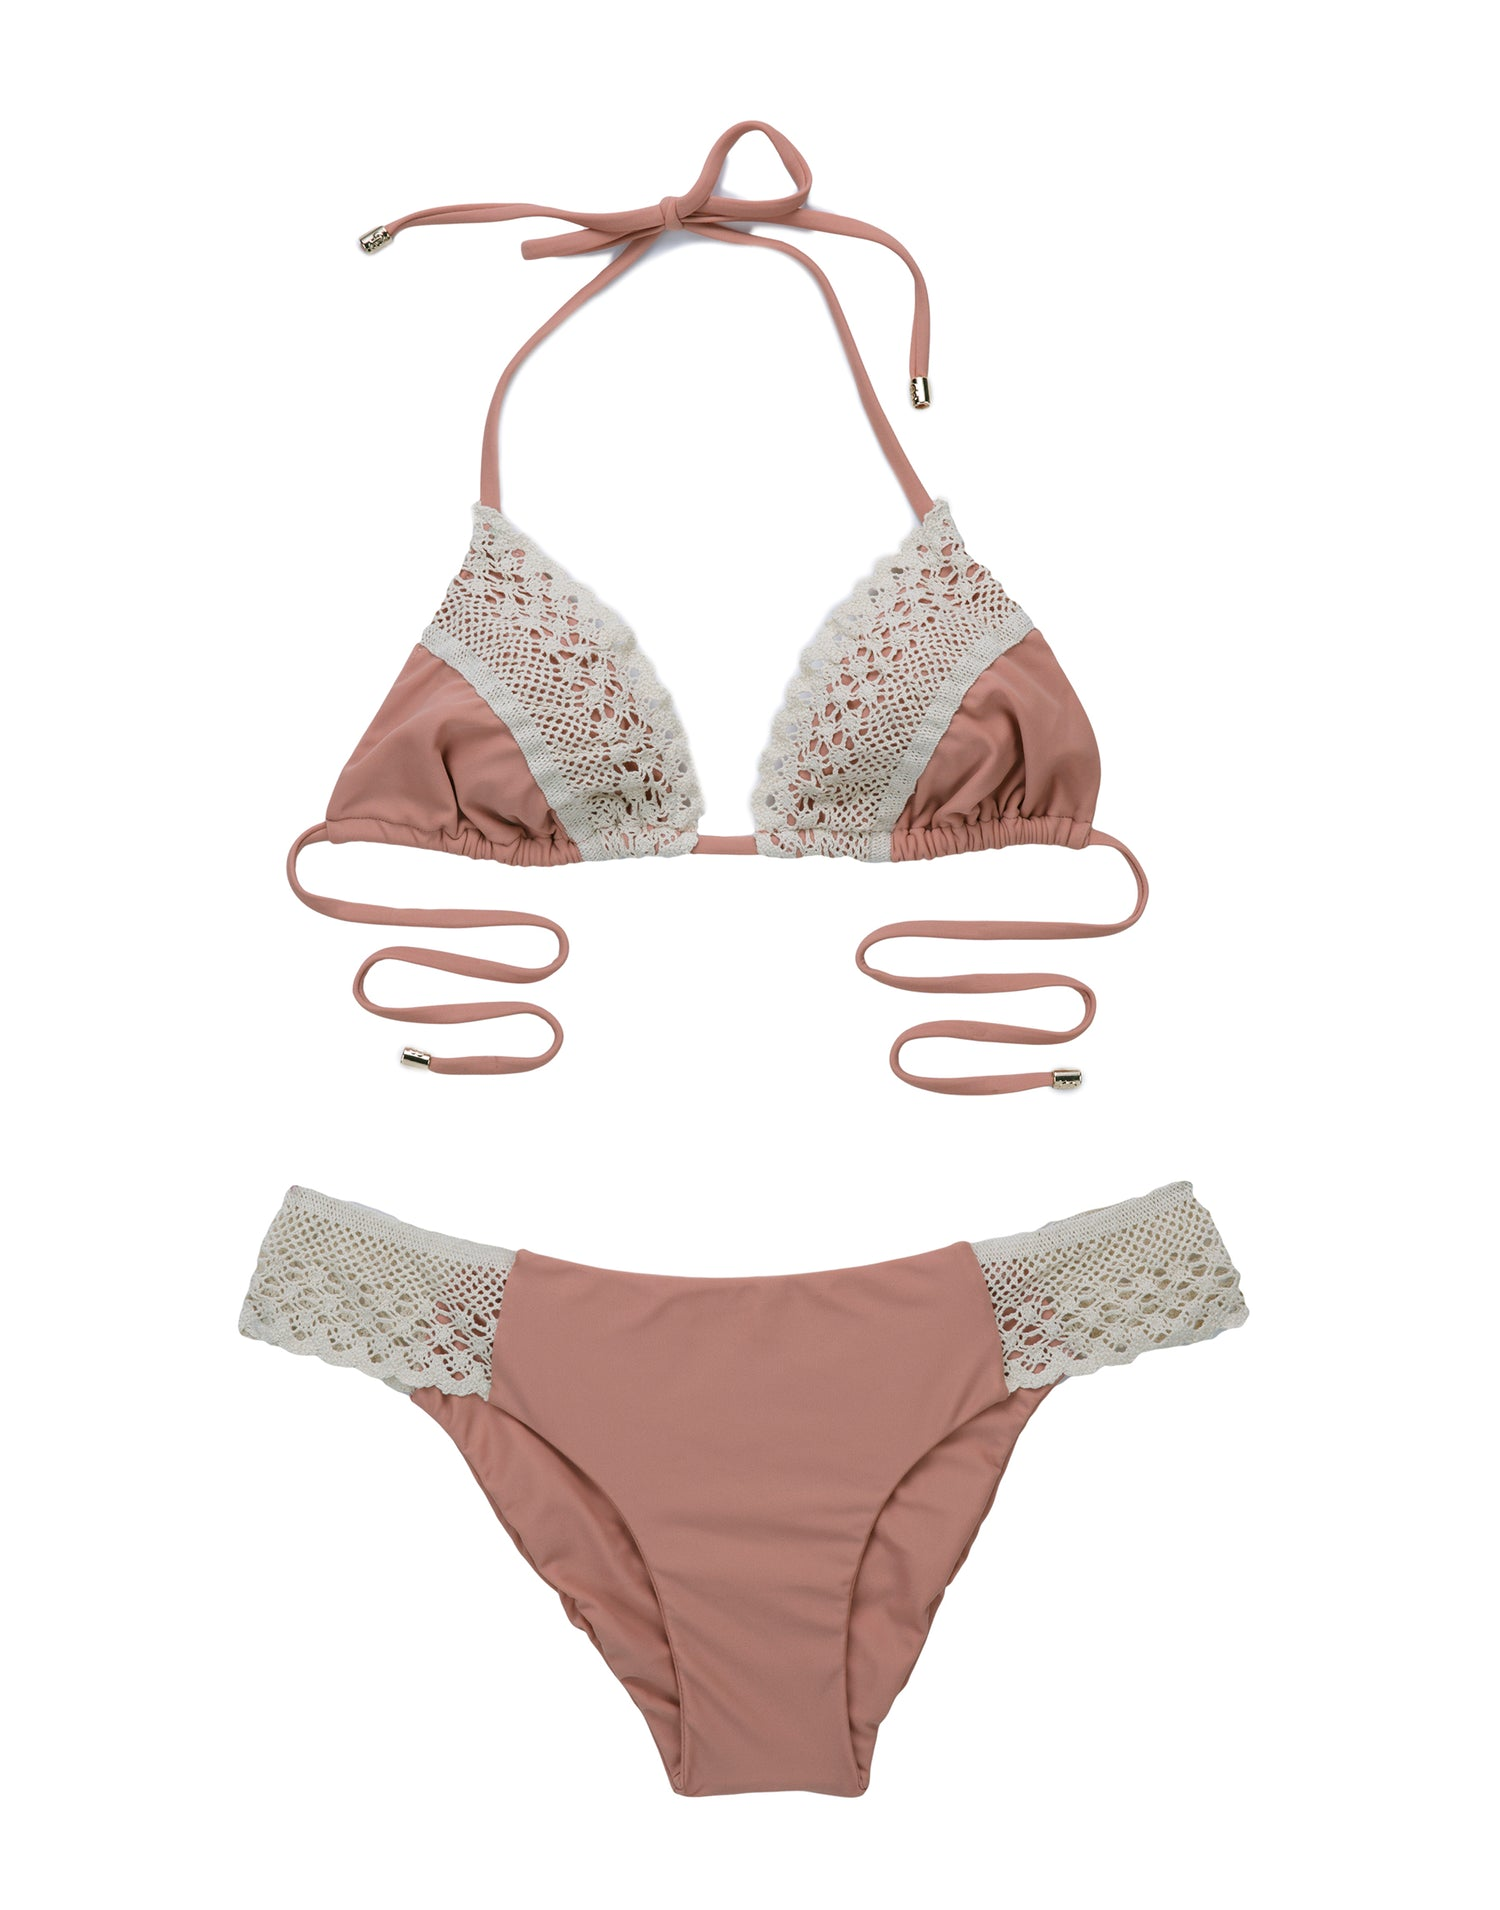 Lady Lace Skimpy Bikini Bottom in Whiskey Rose - product view